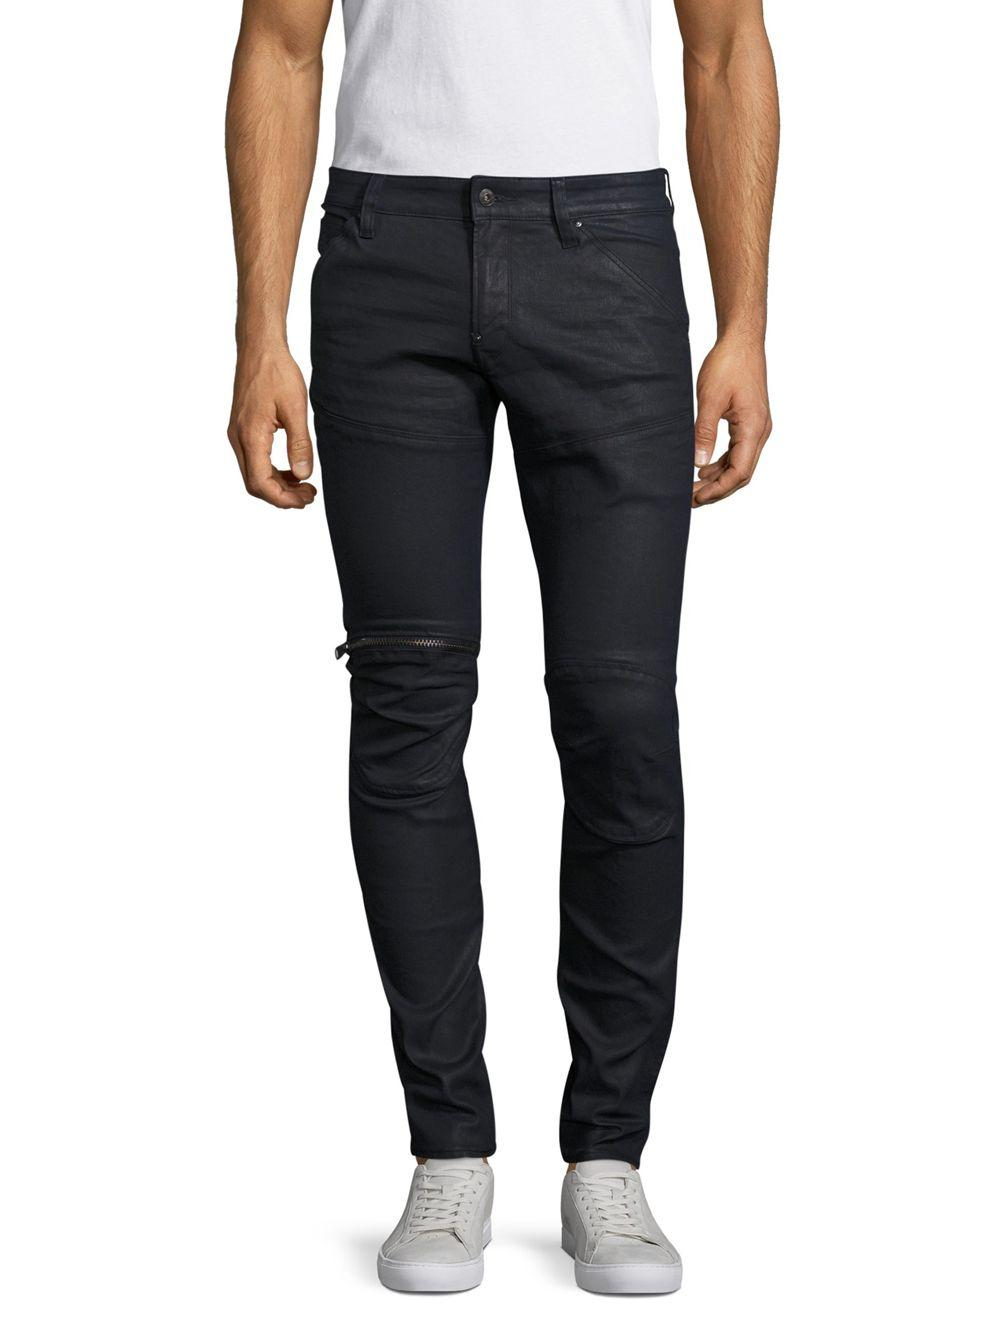 Lyst - G-Star Raw Skinny Jeans for Men